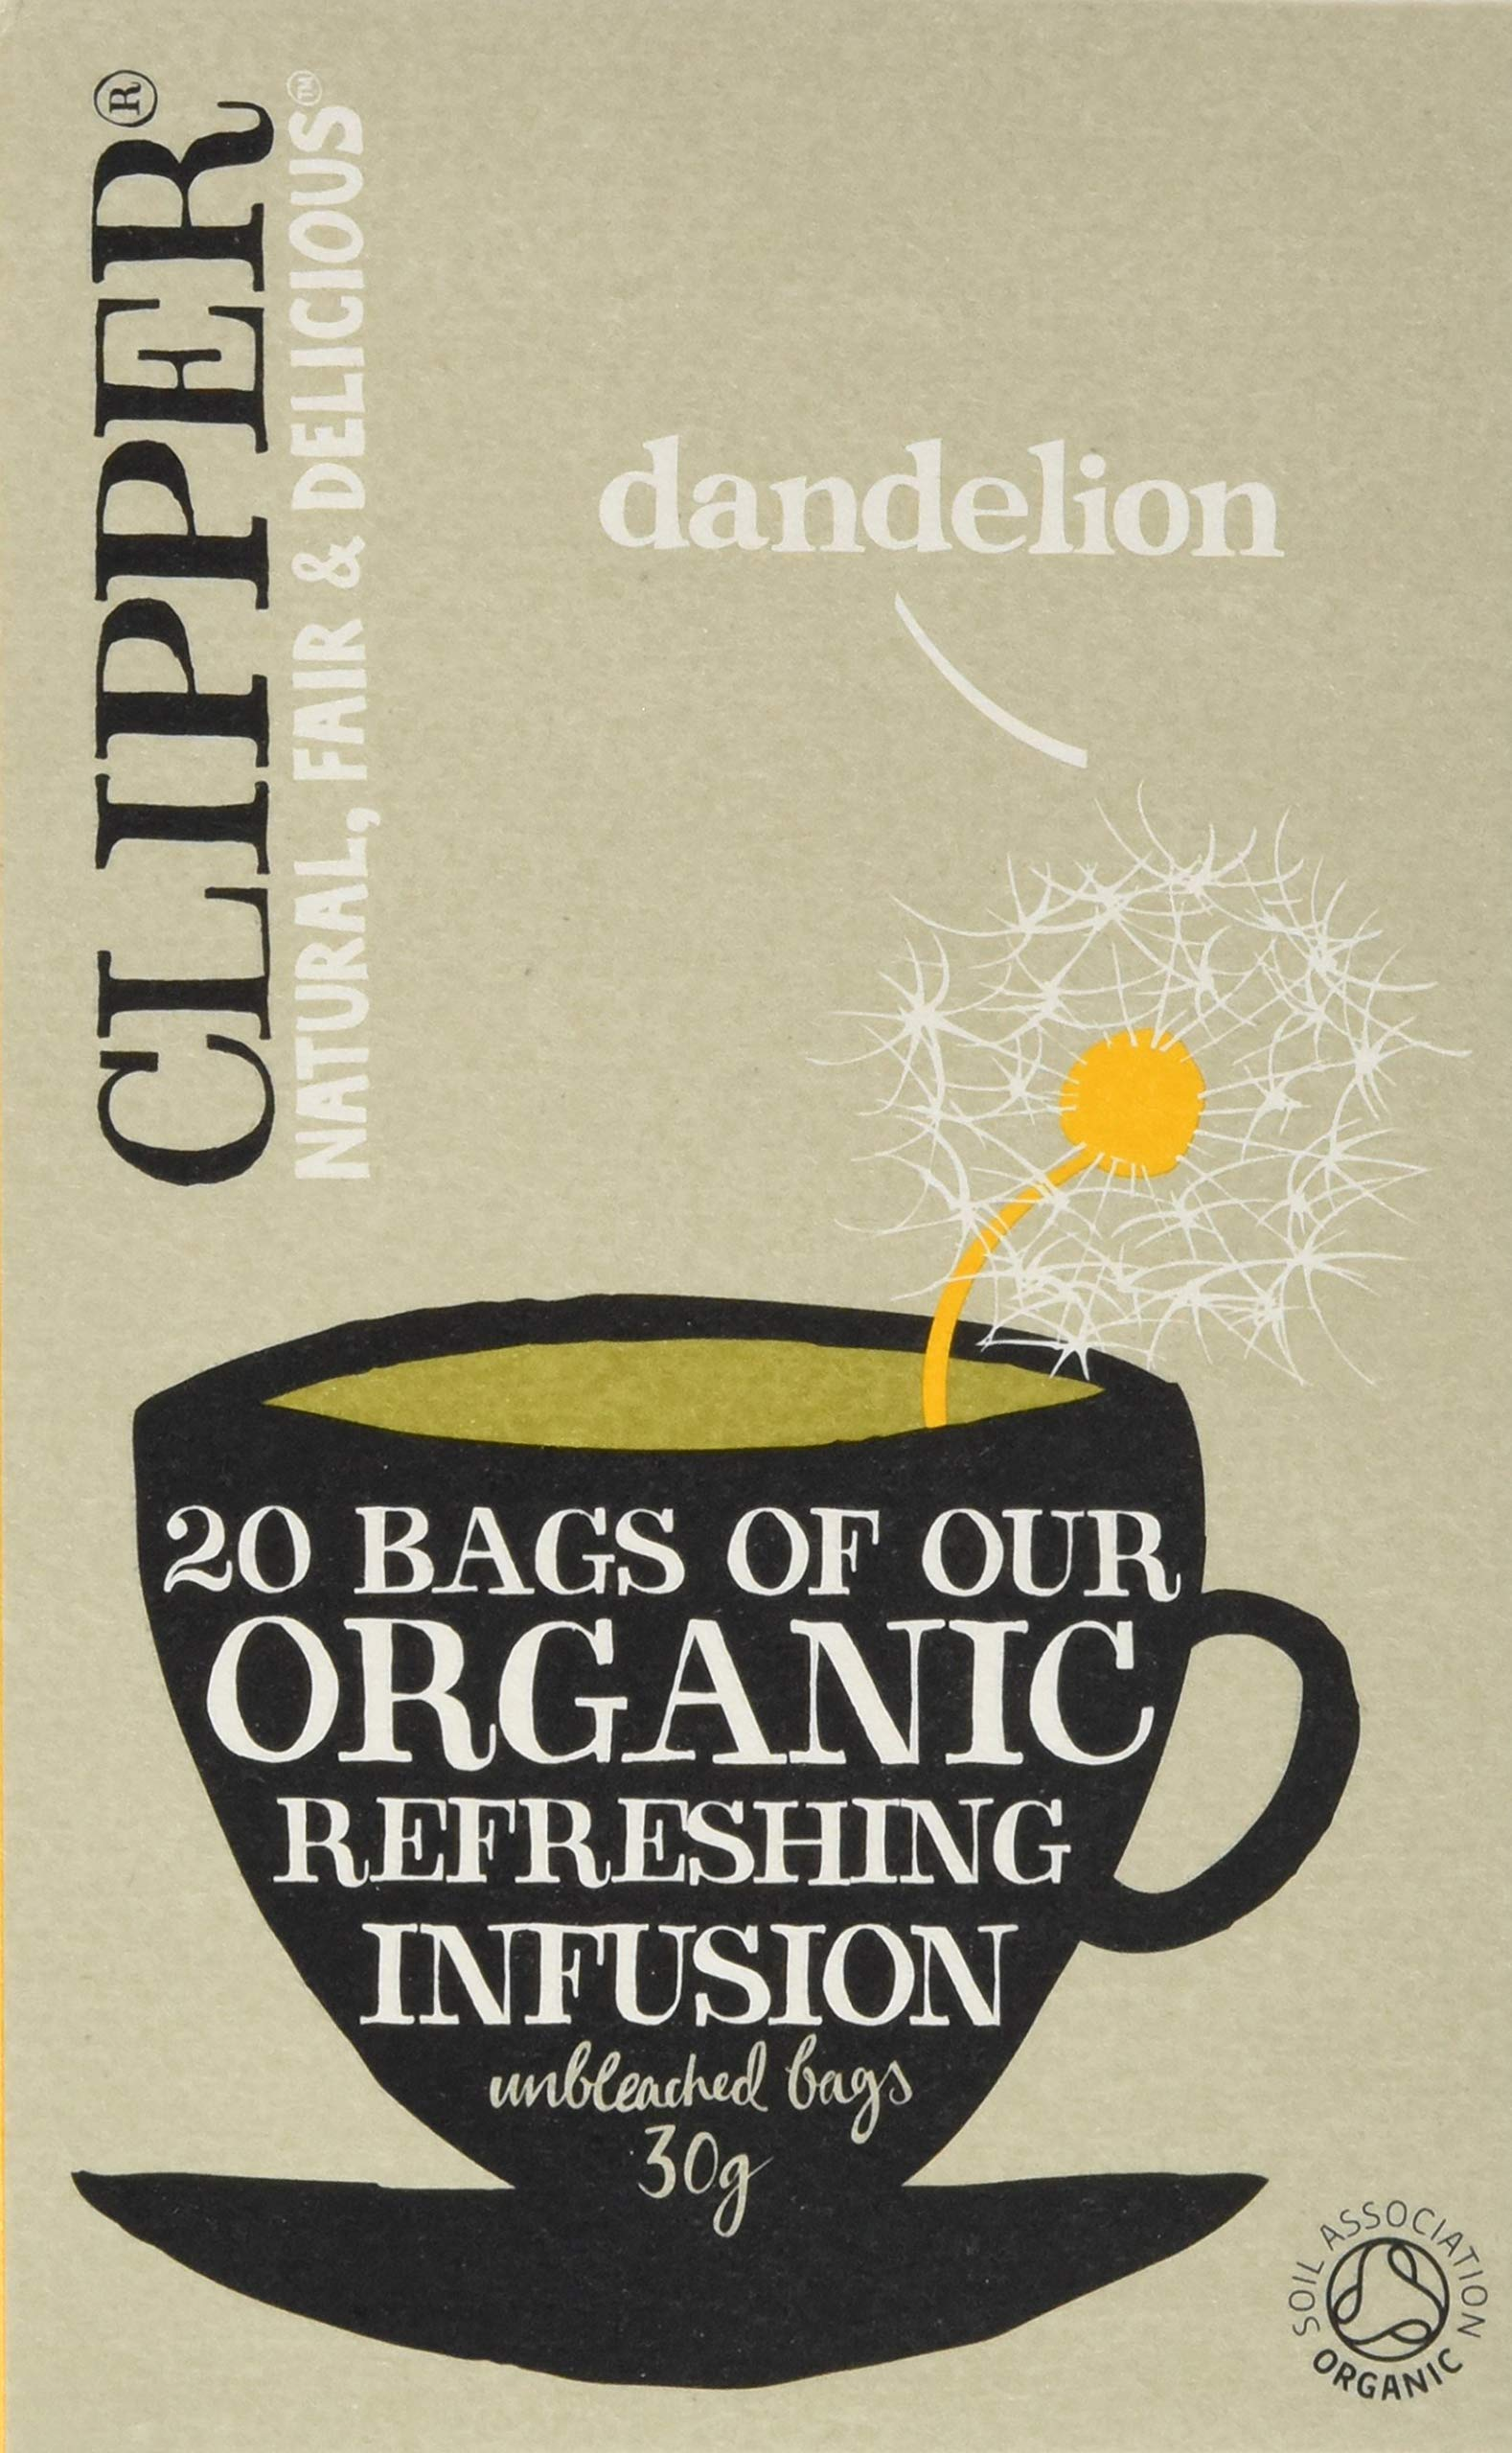 Clipper Organic Dandelion Infusion 20 Bags (Pack of 6, Total 120 Teabags)